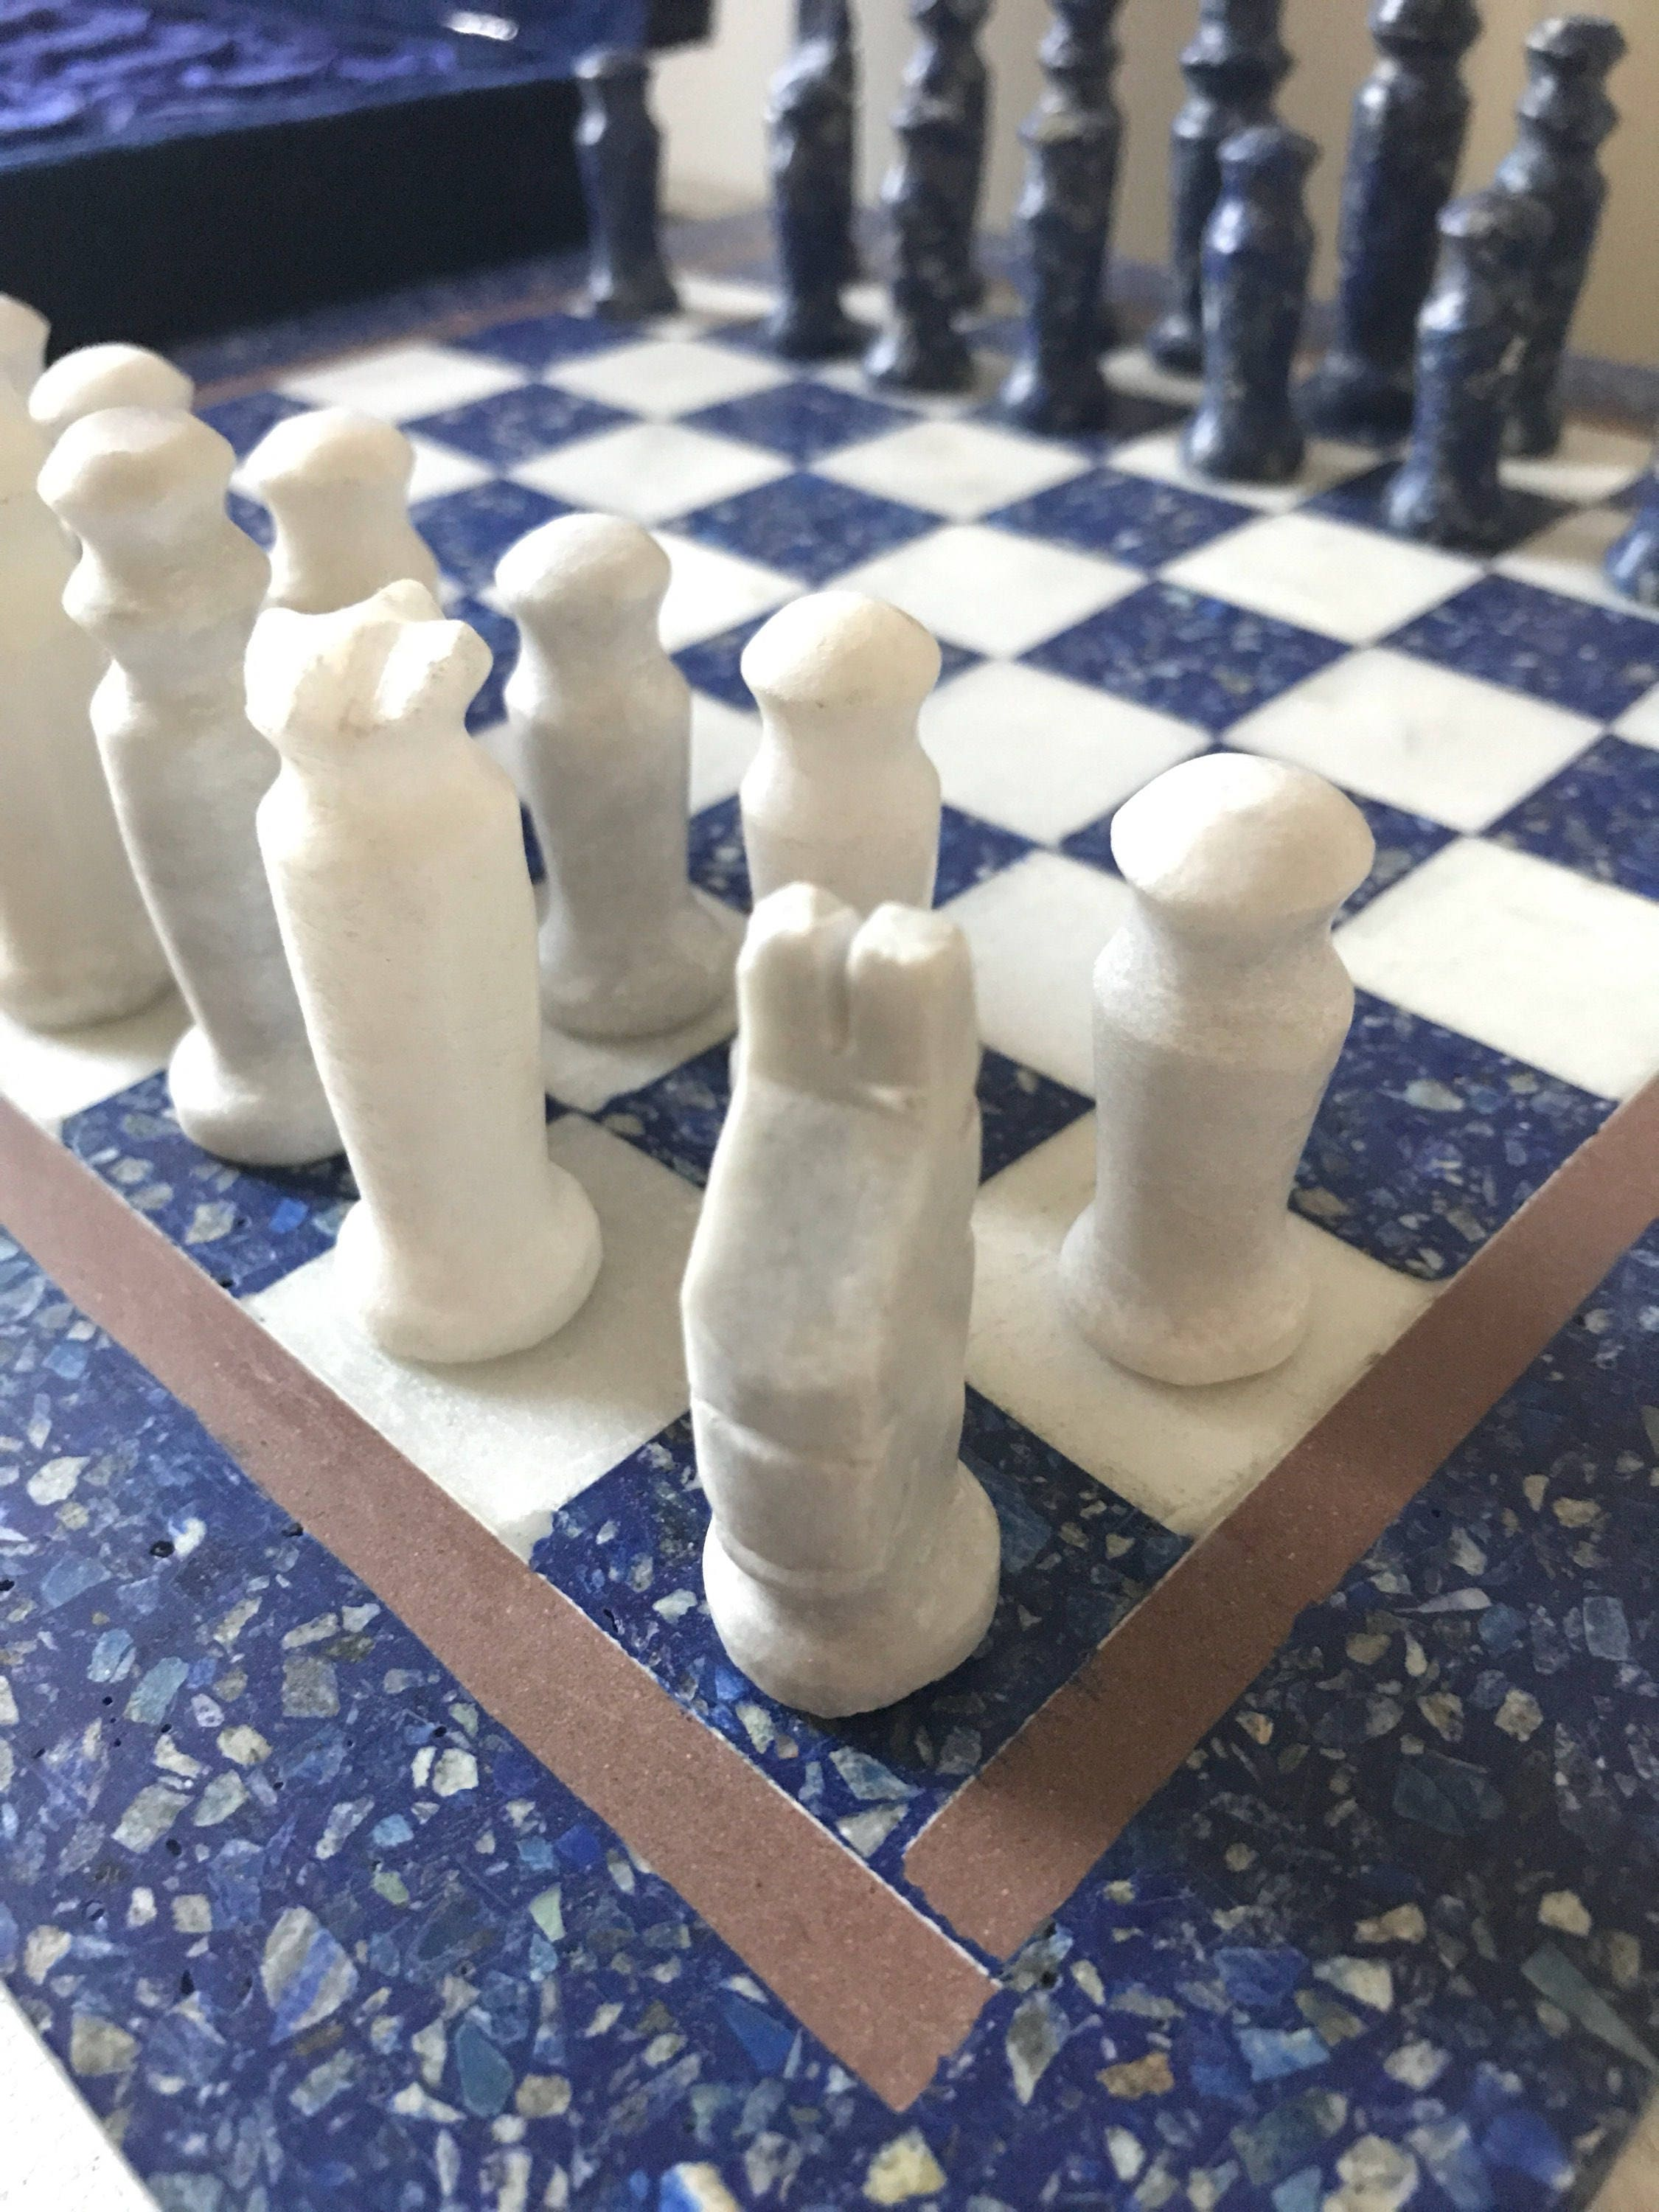 Vintage marble chess set granite chessboard blue and white stone chess set - Granite chess pieces ...